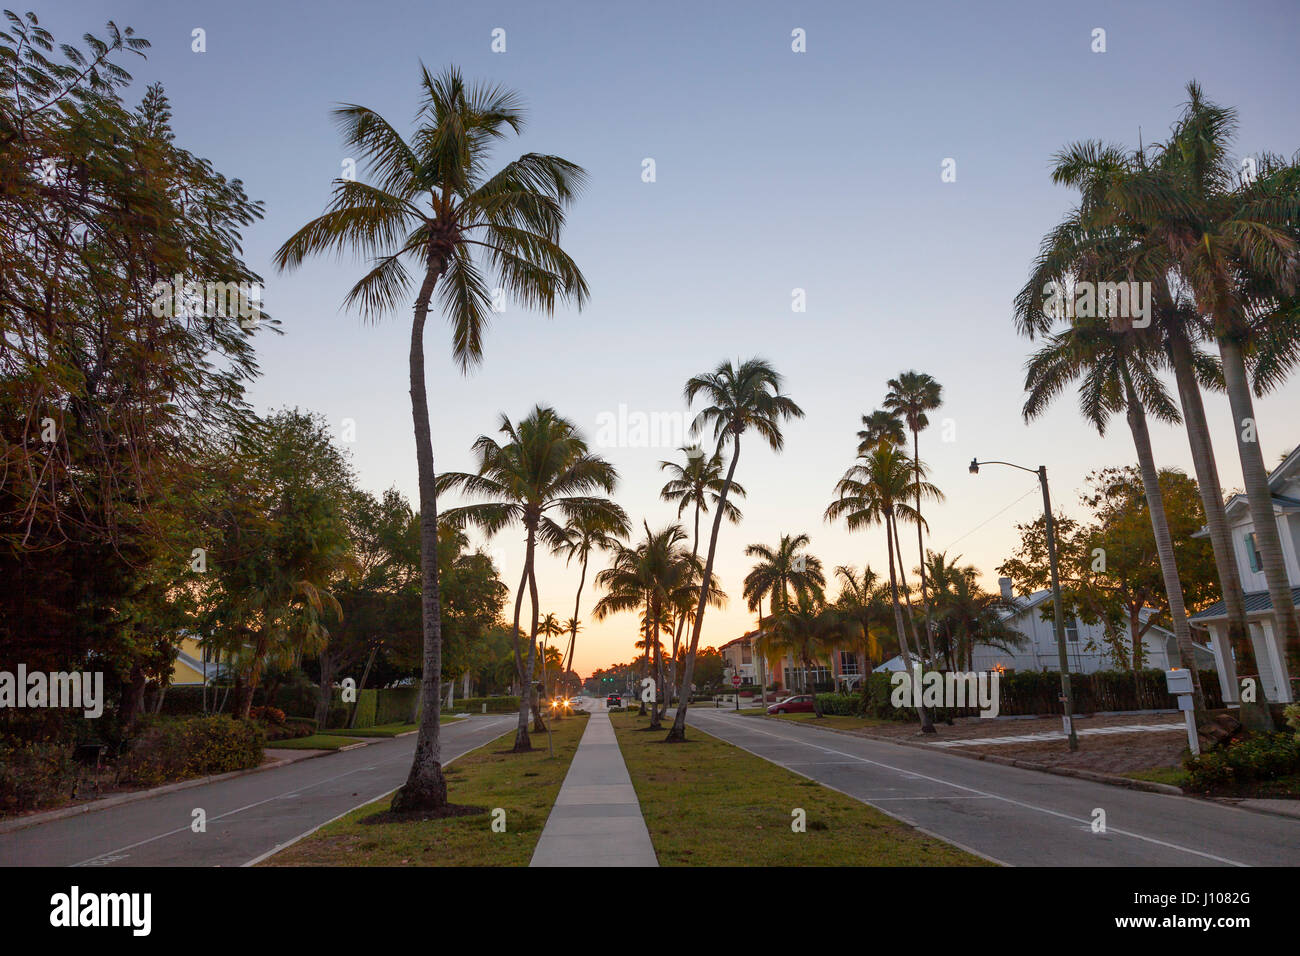 Coconut nut palm trees in a street in the city of Naples. Florida, United States - Stock Image